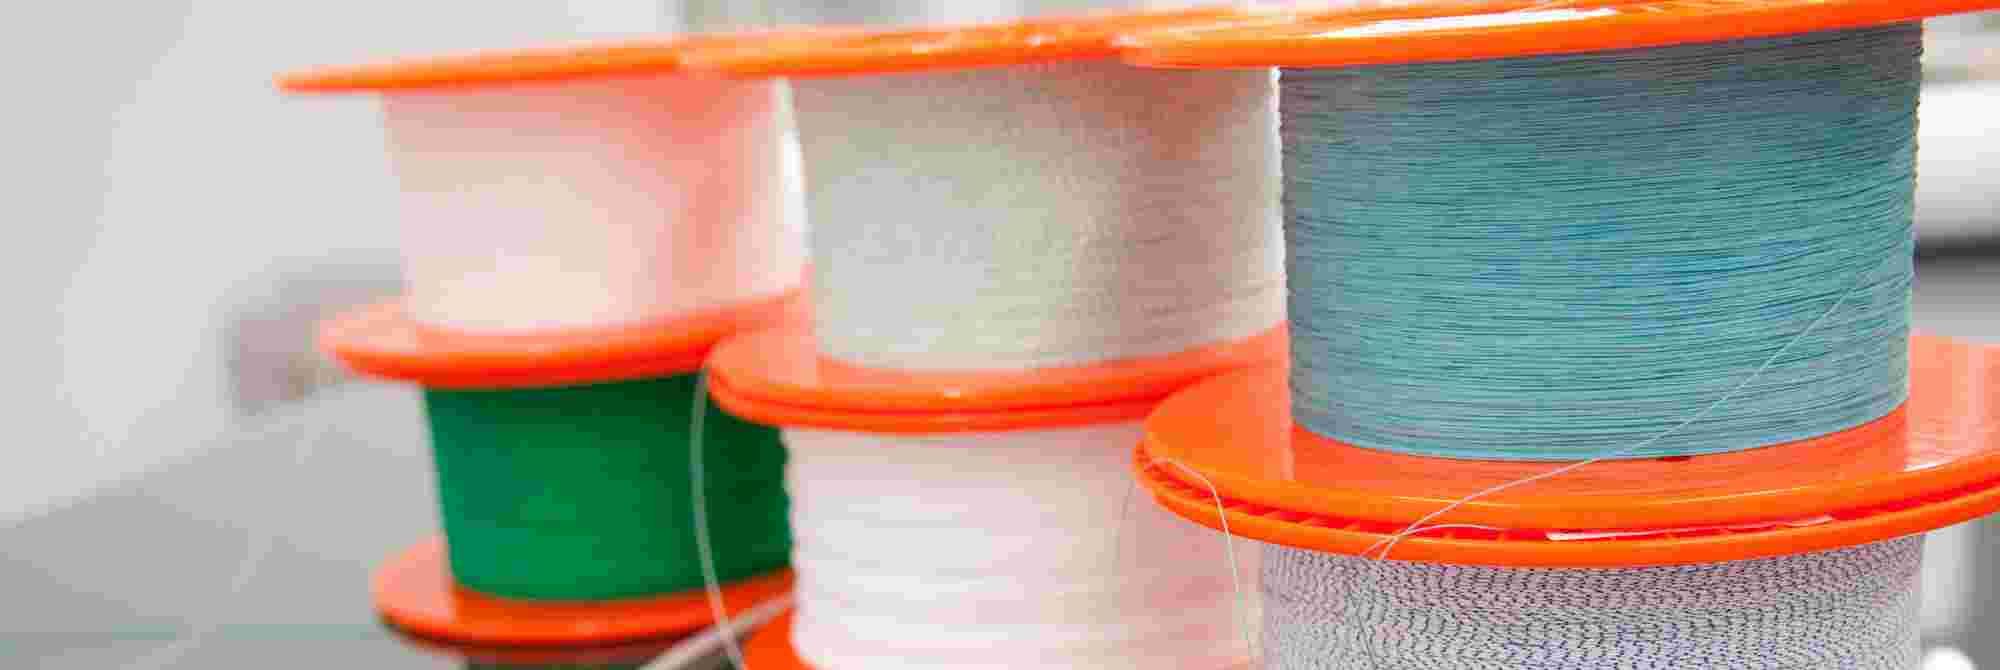 A spool of raw material